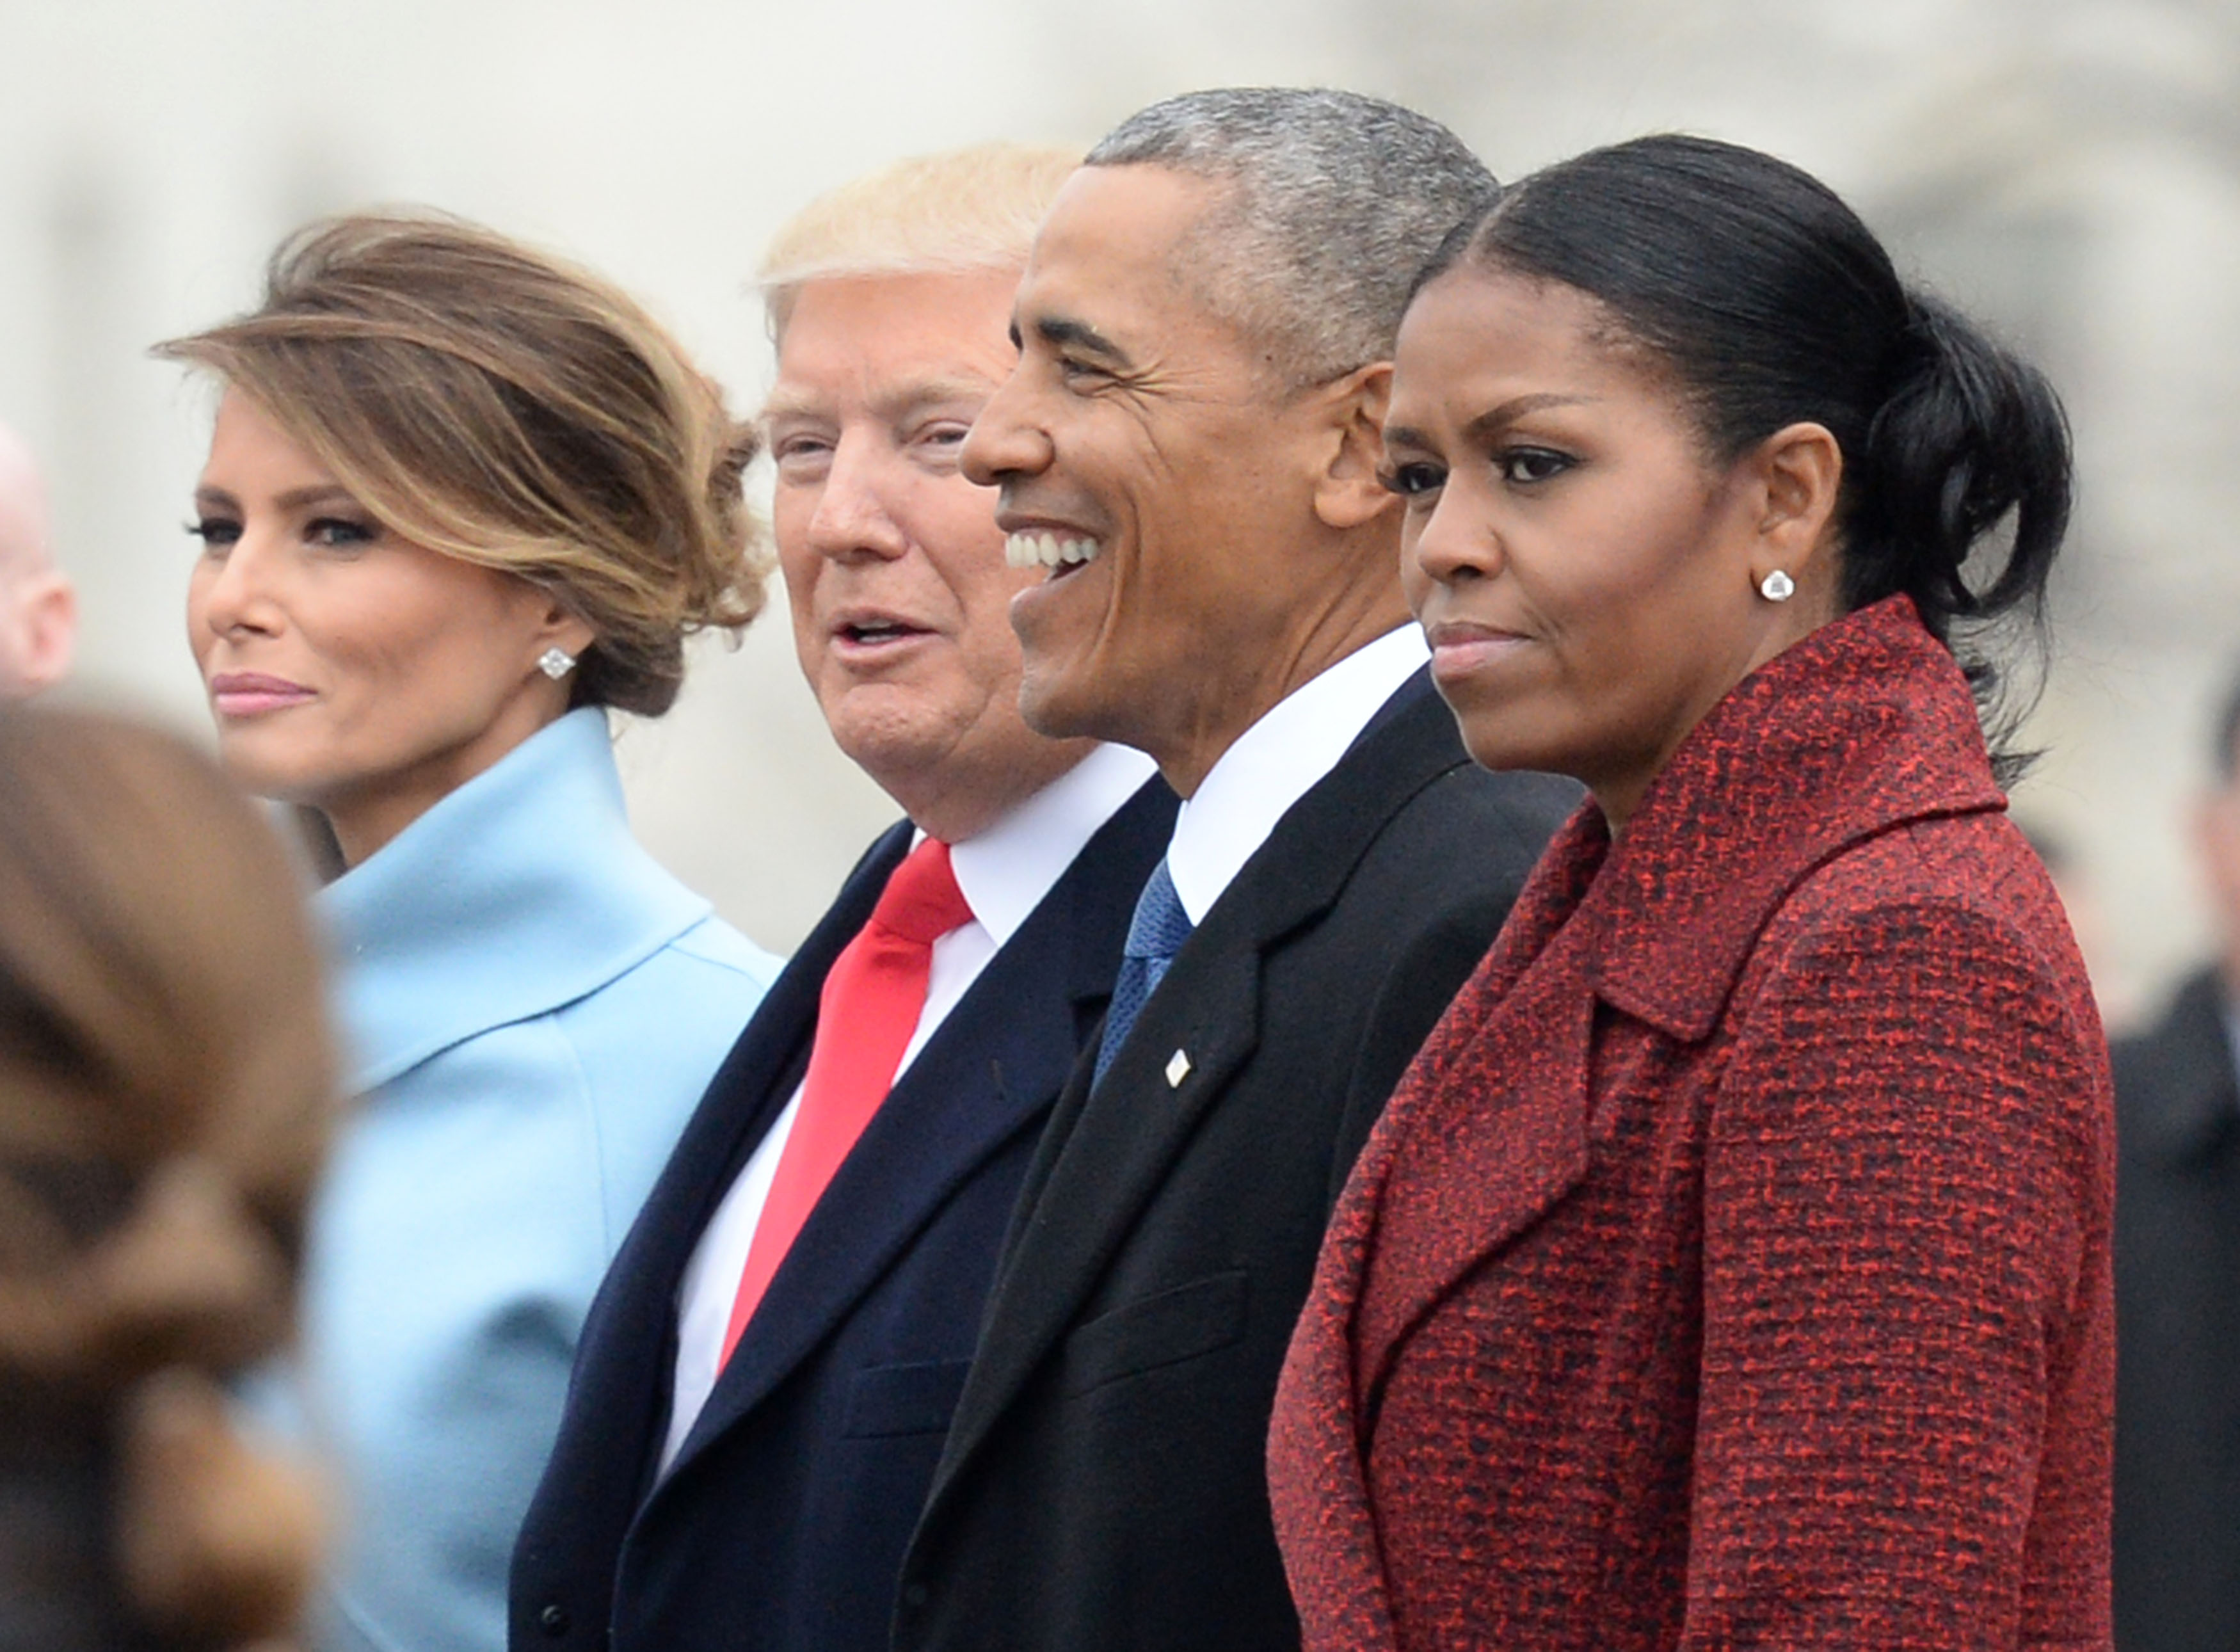 President Donald Trump, First Lady Melania Trump, former President Barack Obama and former First Lady Michelle Obama walk together following the inauguration, on Capitol Hill in Washington, D.C. on January 20, 2017. (Getty Images)